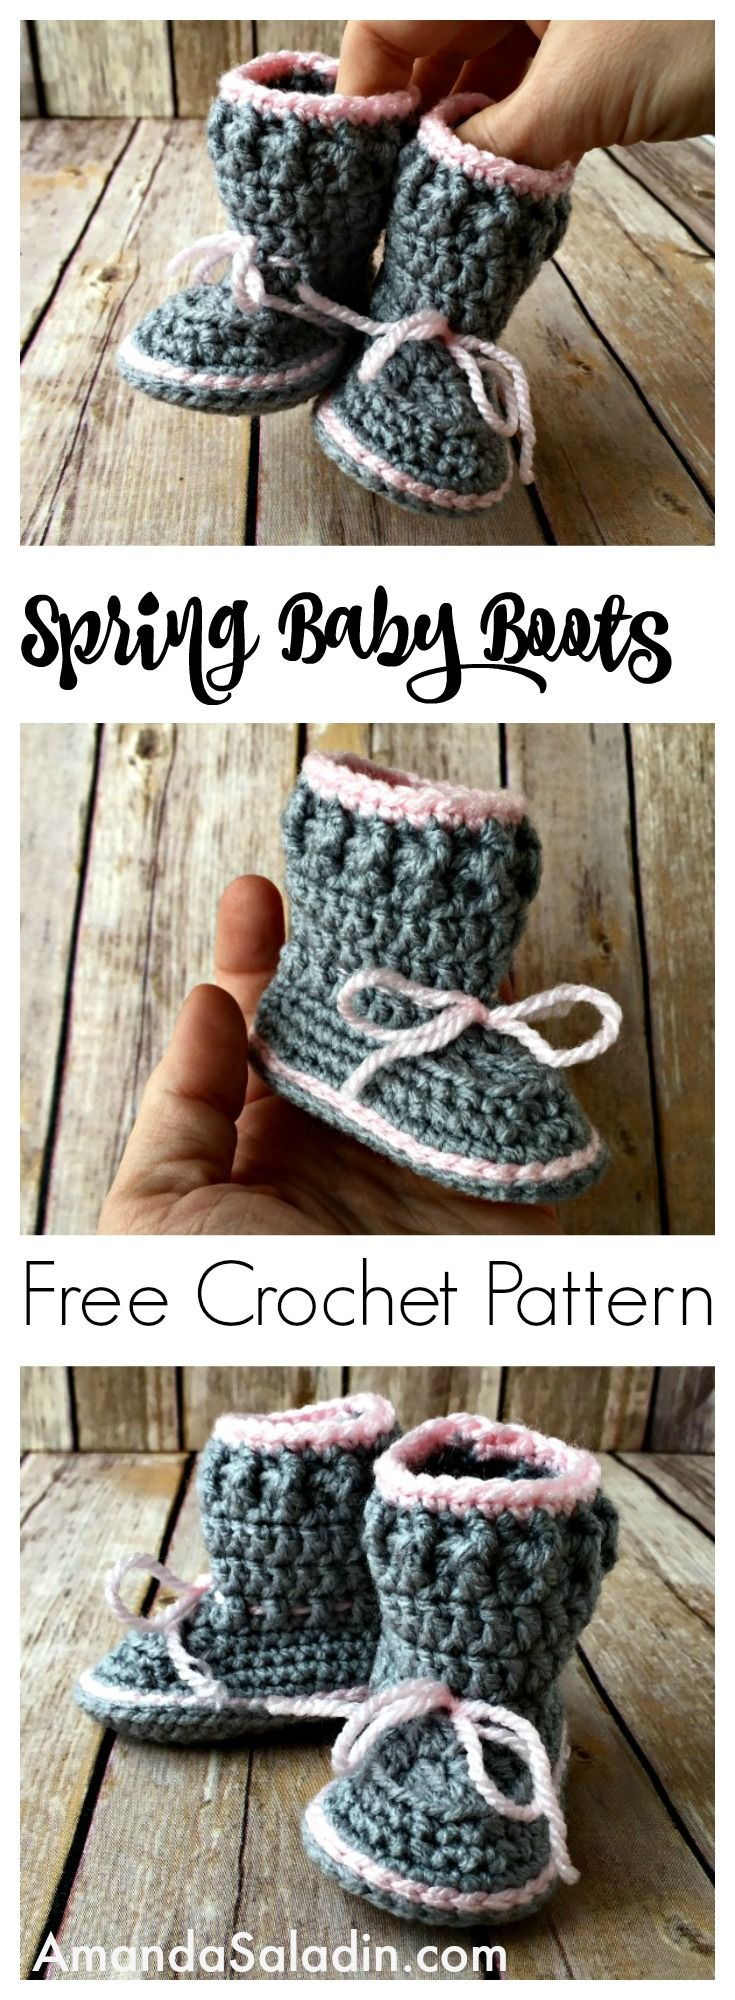 Spring Baby Boots - Free Crochet Pattern #crochetbabyboots